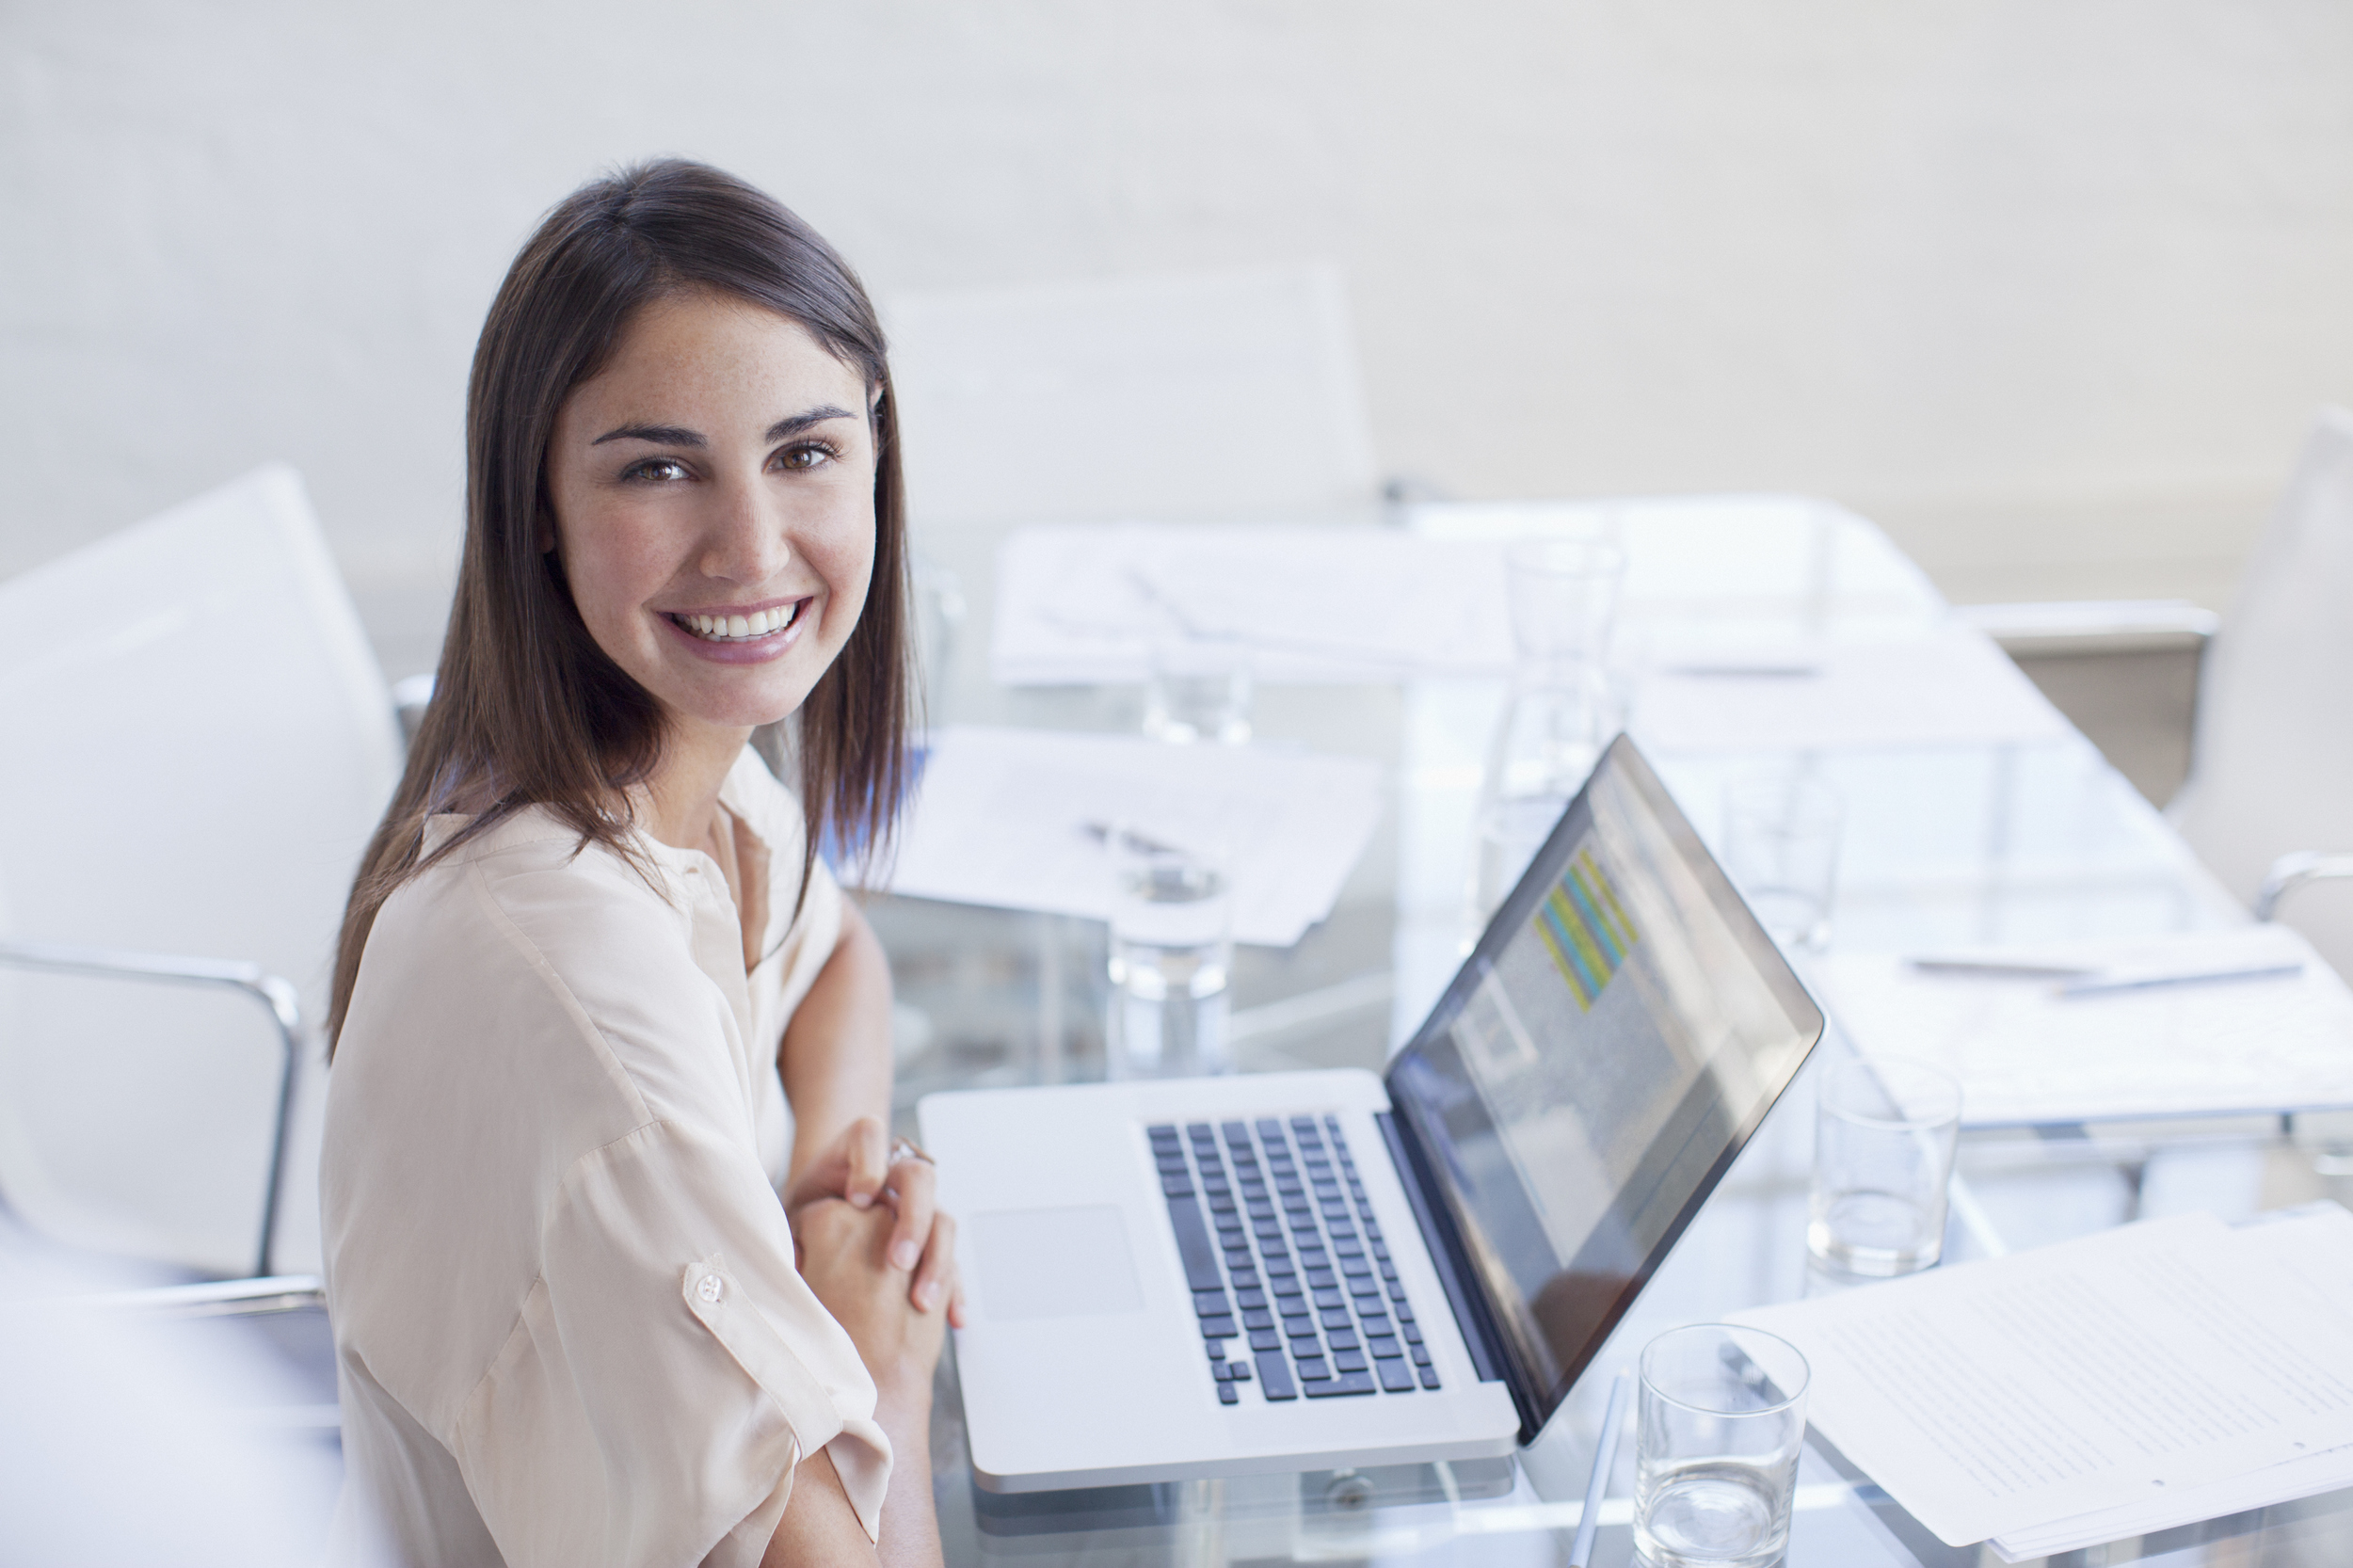 buy coursework online uk Writers help uk provides all types of assistance the coursework writing experts at online writers help uk are well-aware buy professional coursework.